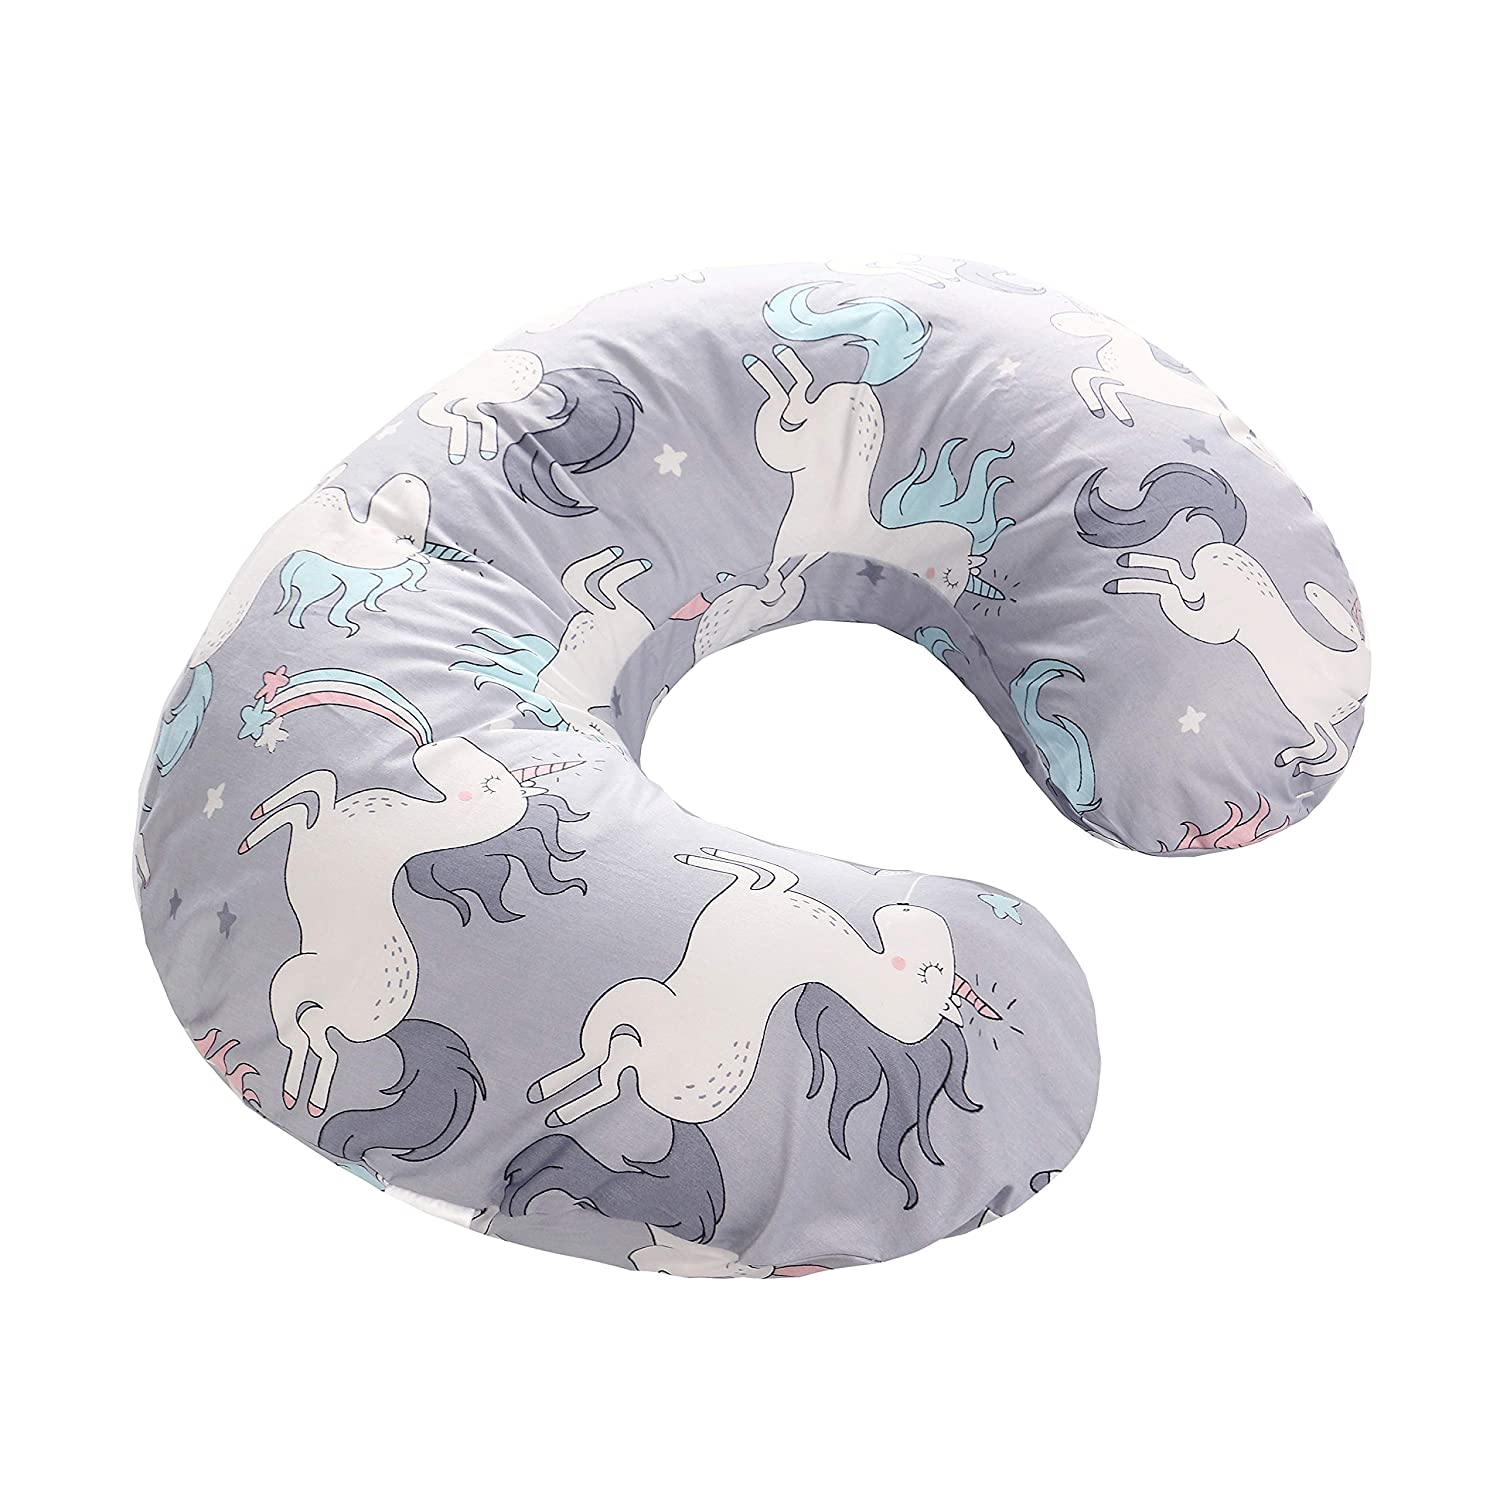 Blue LAT Nursing Pillow Cover,100/% Natural Cotton Breastfeeding Pillow Slipcover,Extra Soft and Snug on Baby Nursing Pillow